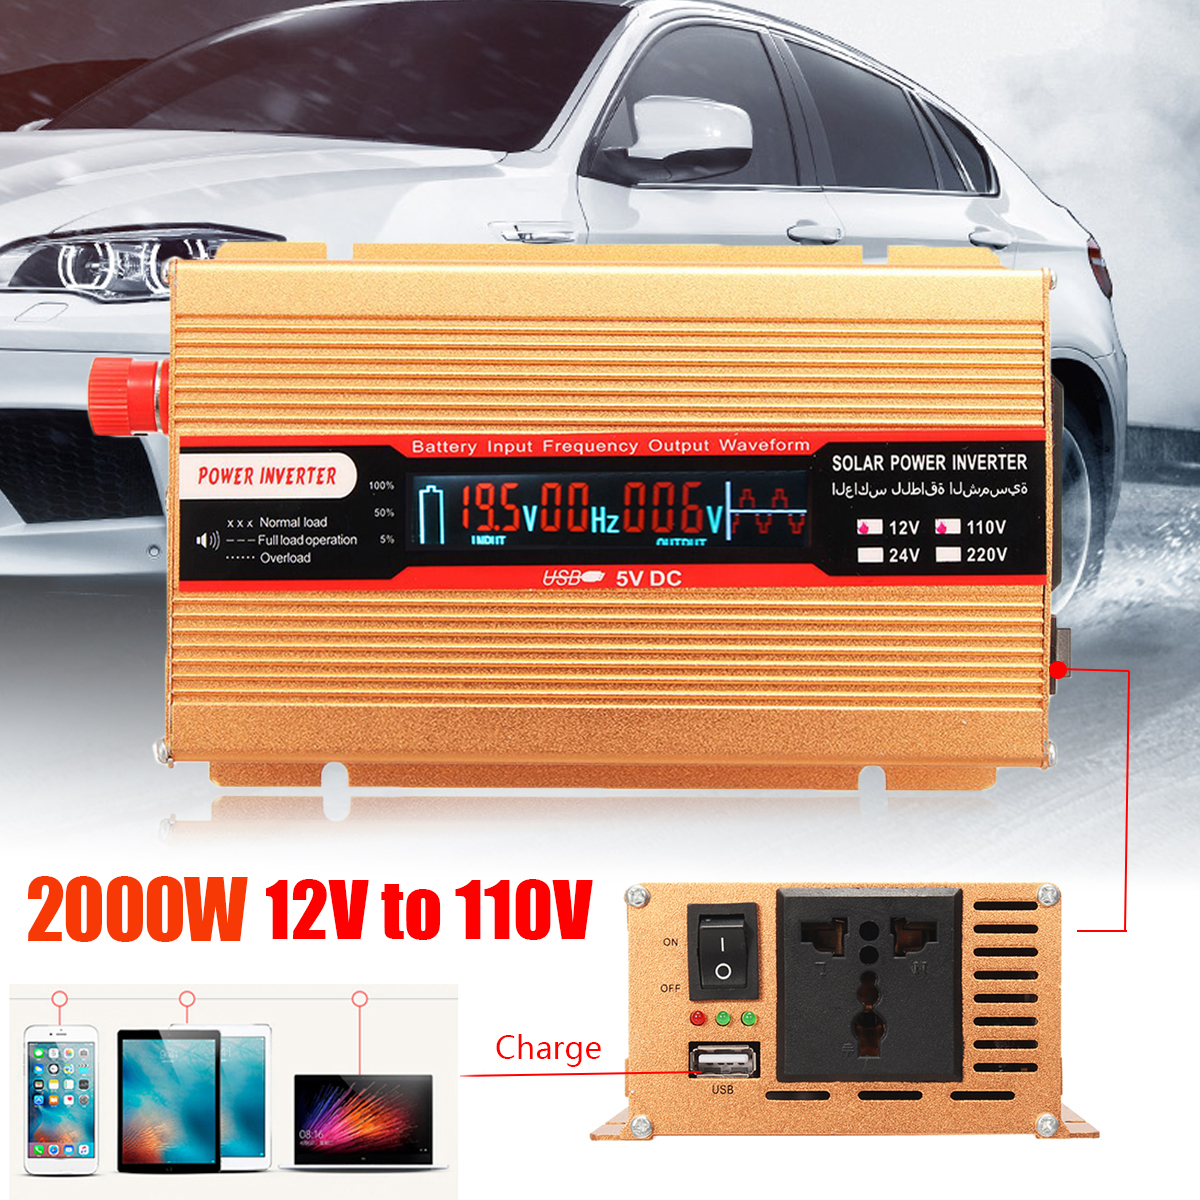 Voltage Transformer PEAK 2000W Car Power Inverter 12/24V To AC 220/110V USB Modified Sine Wave Converter for Various Appliances peak 4000w 12 24v to ac 220 110v car power inverter usb modified sine wave converter voltage transformer for various appliances